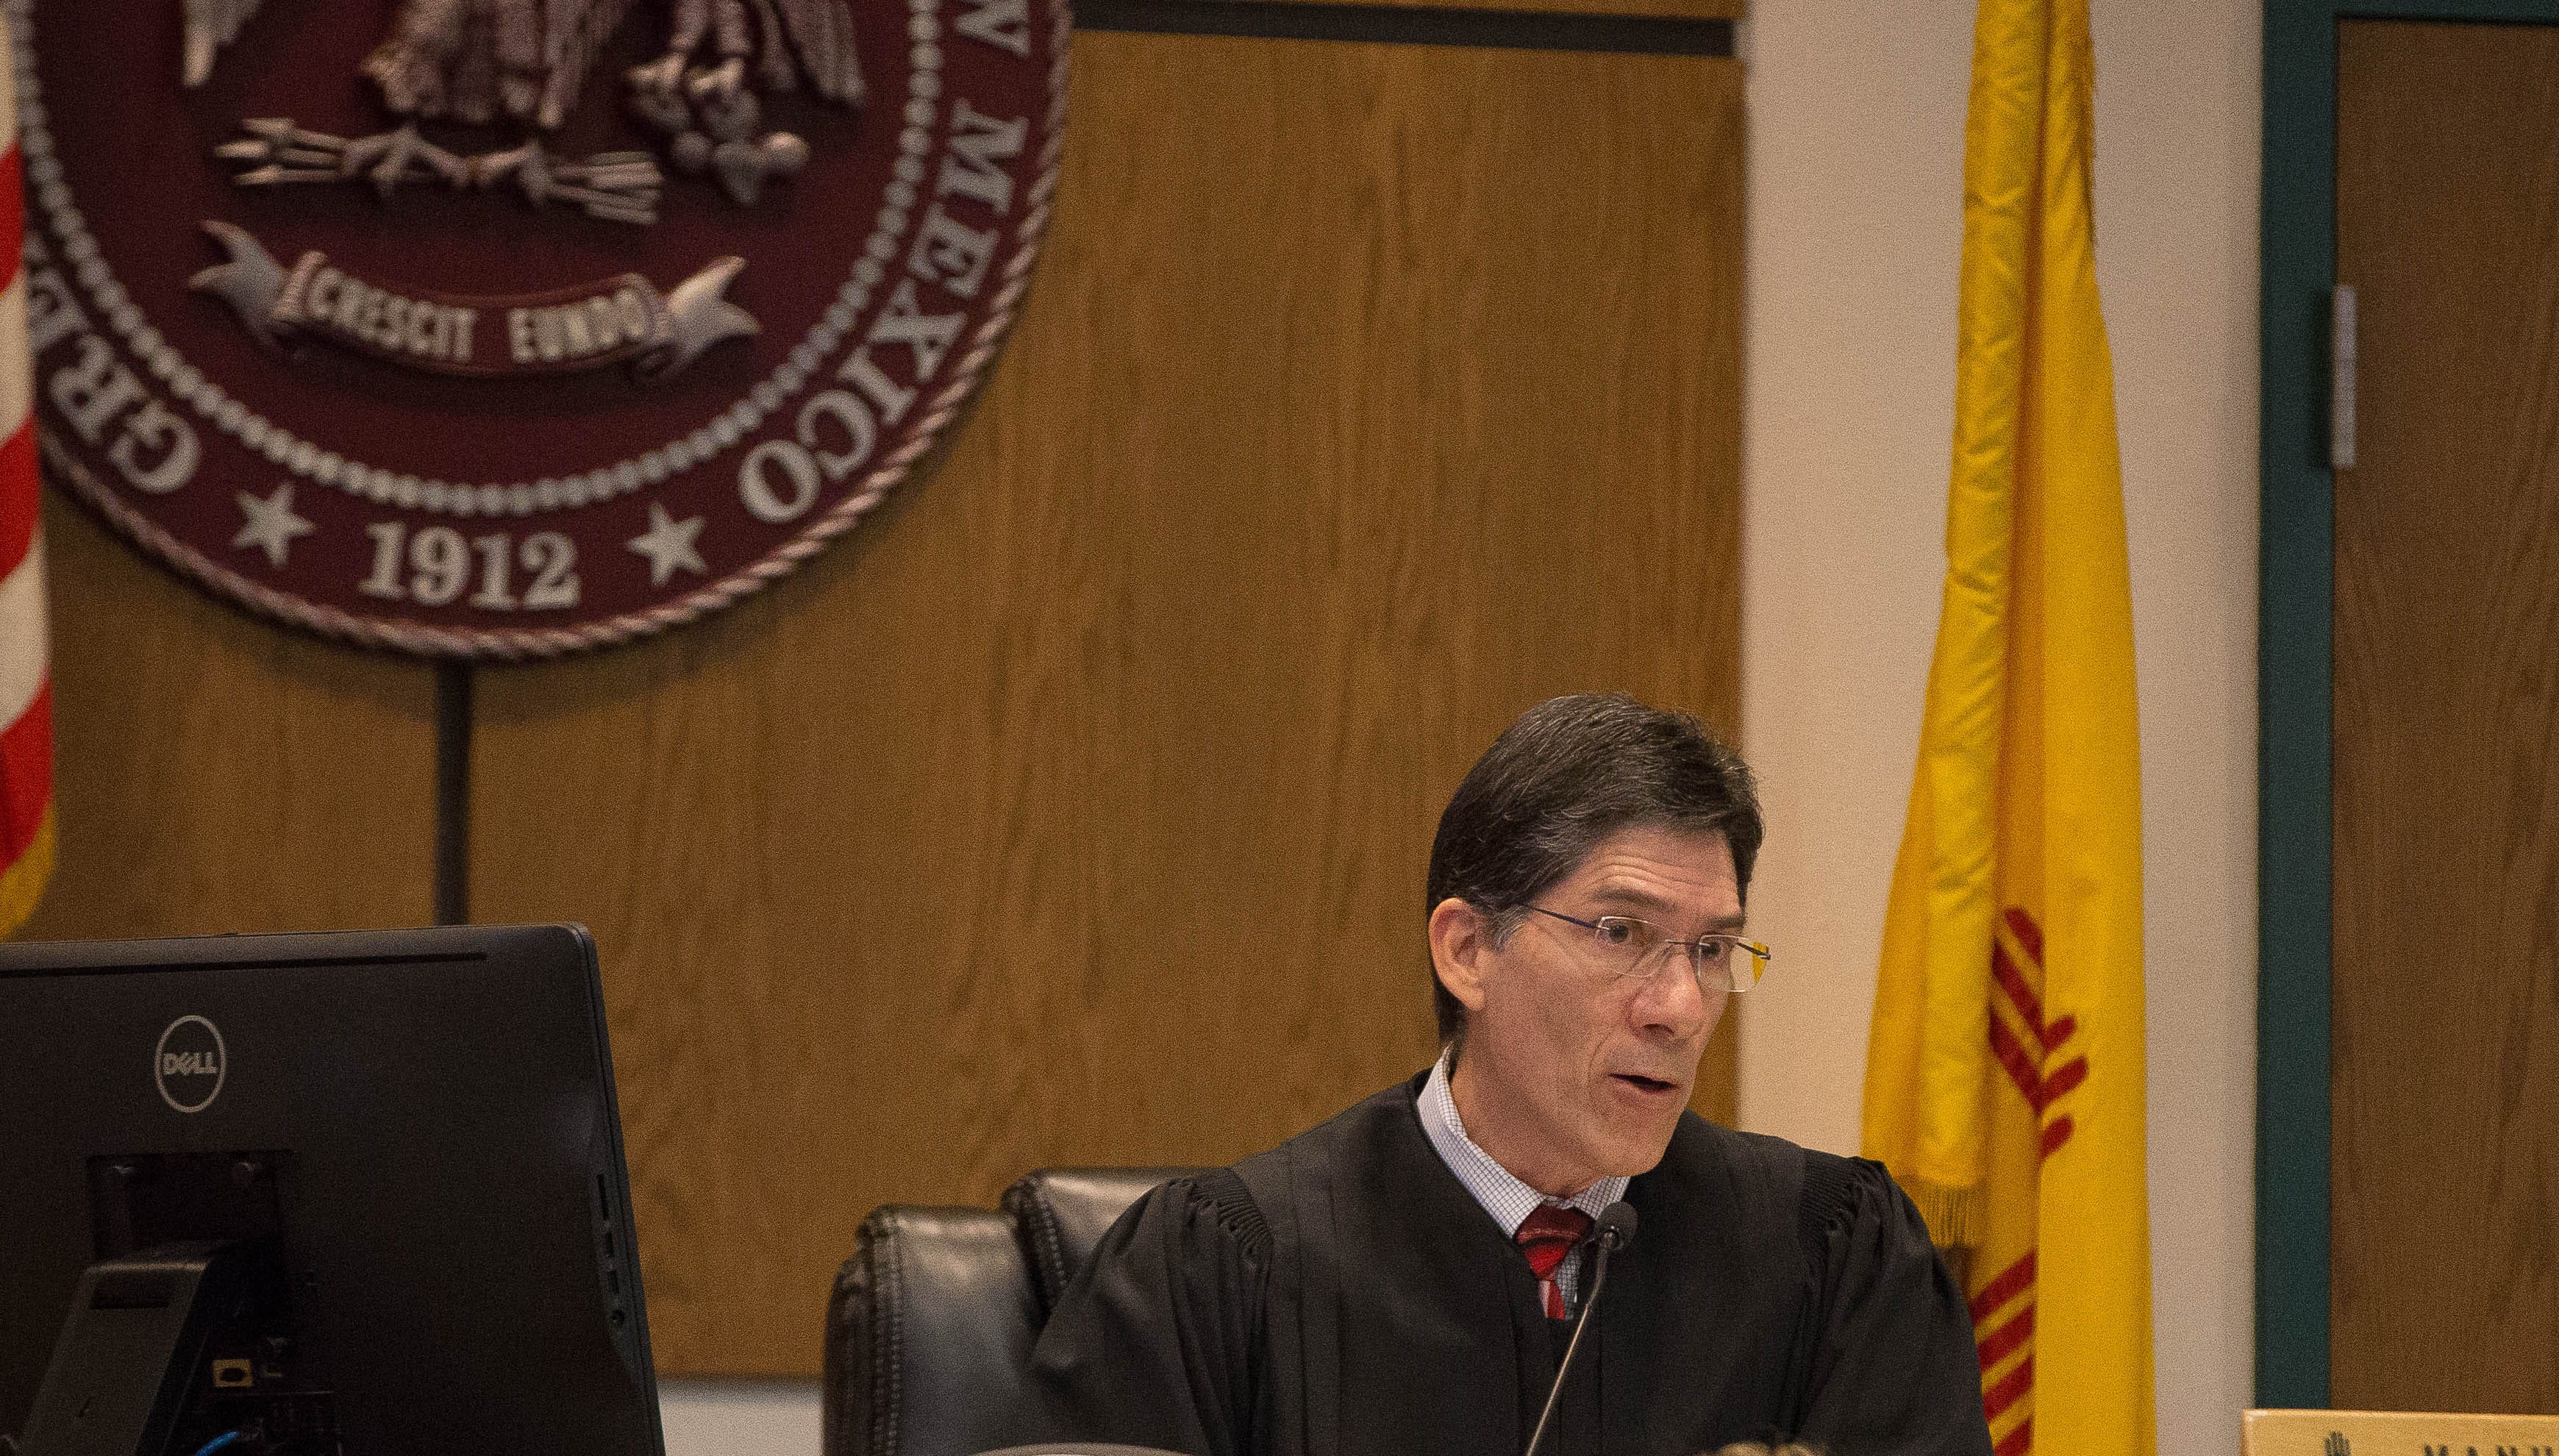 Judge Manuel Arrieta listens to Carter B. Harrison, attorney for  Yvette Herrell, who is petitioning the court to impound the absentee ballots cast in the Congressional District two election. Friday November 16, 2018.